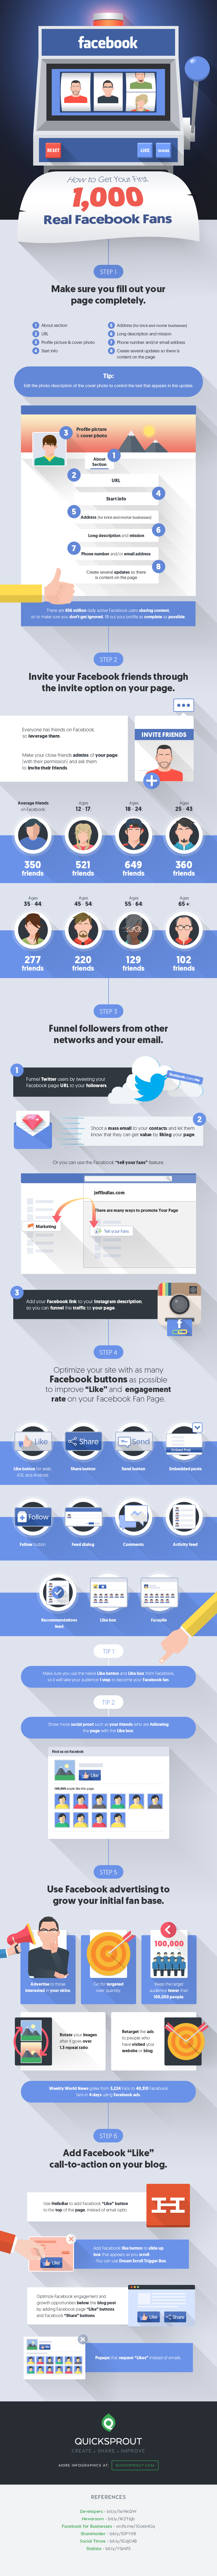 6 Quickest Ways To Grow Your Facebook Followers - #infographic